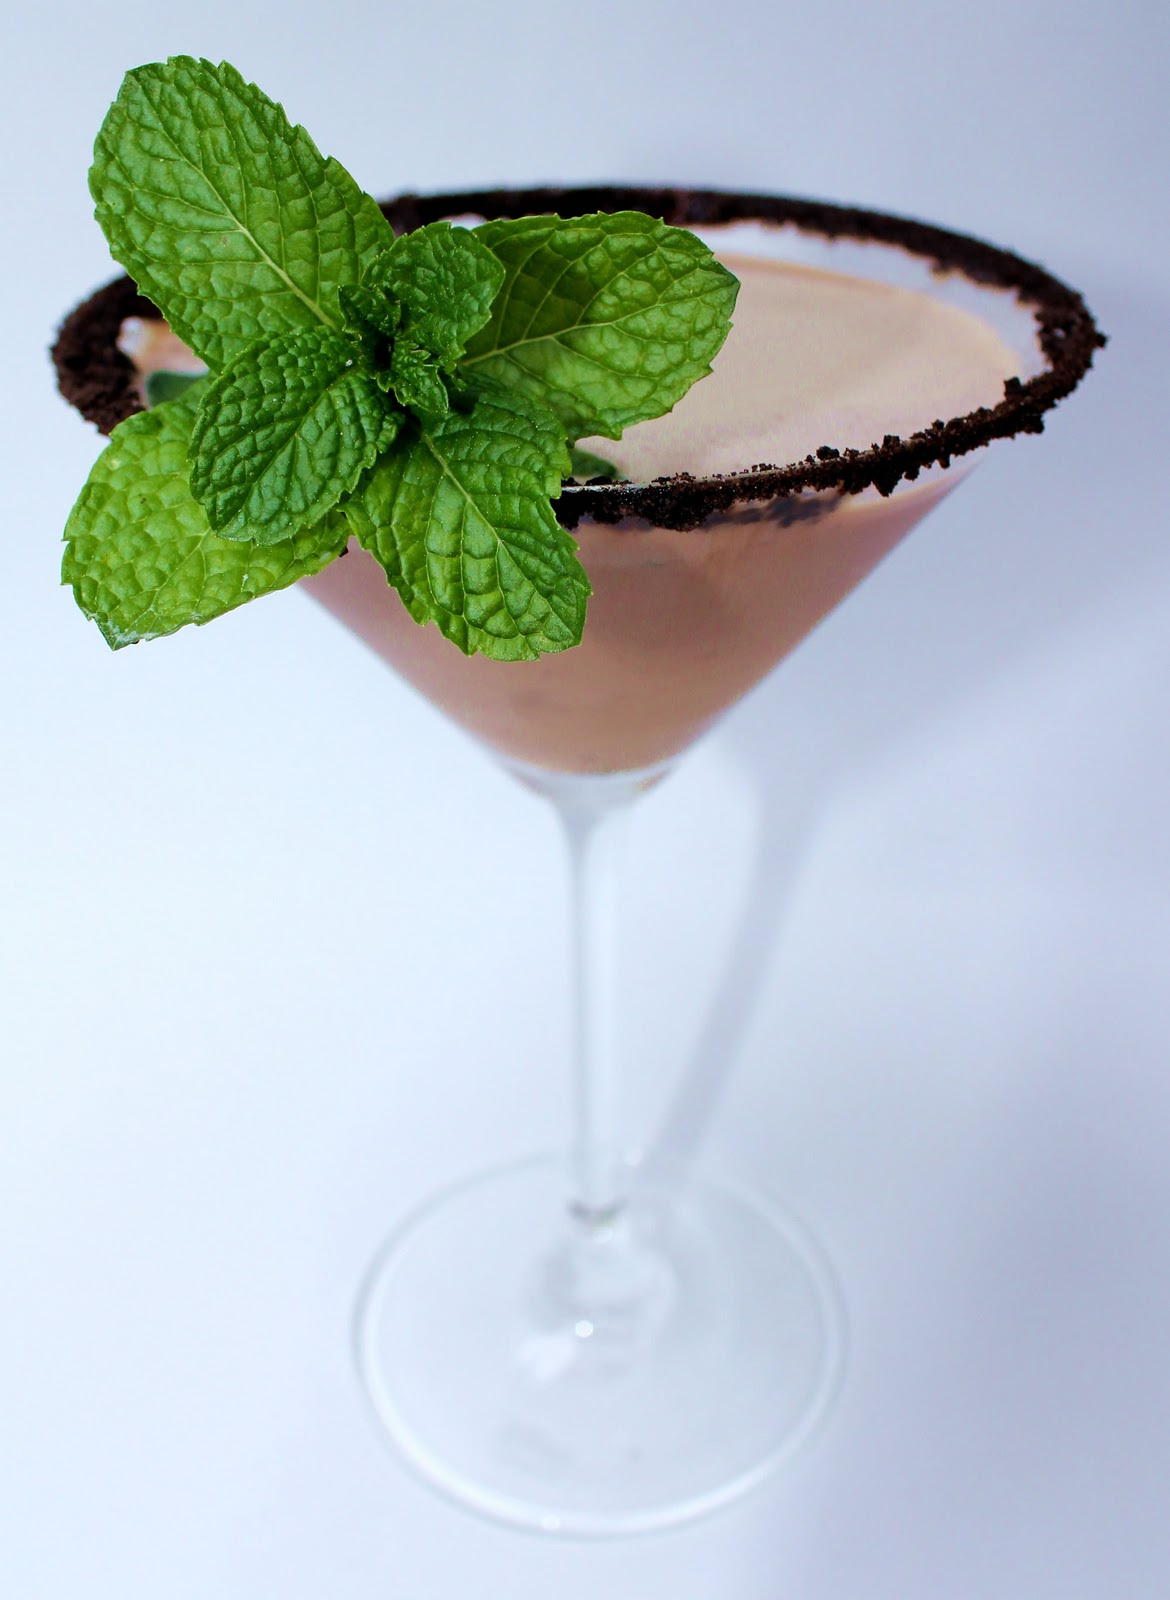 ... Thin Mint-tini? Why chocolate brown and mint green, of course